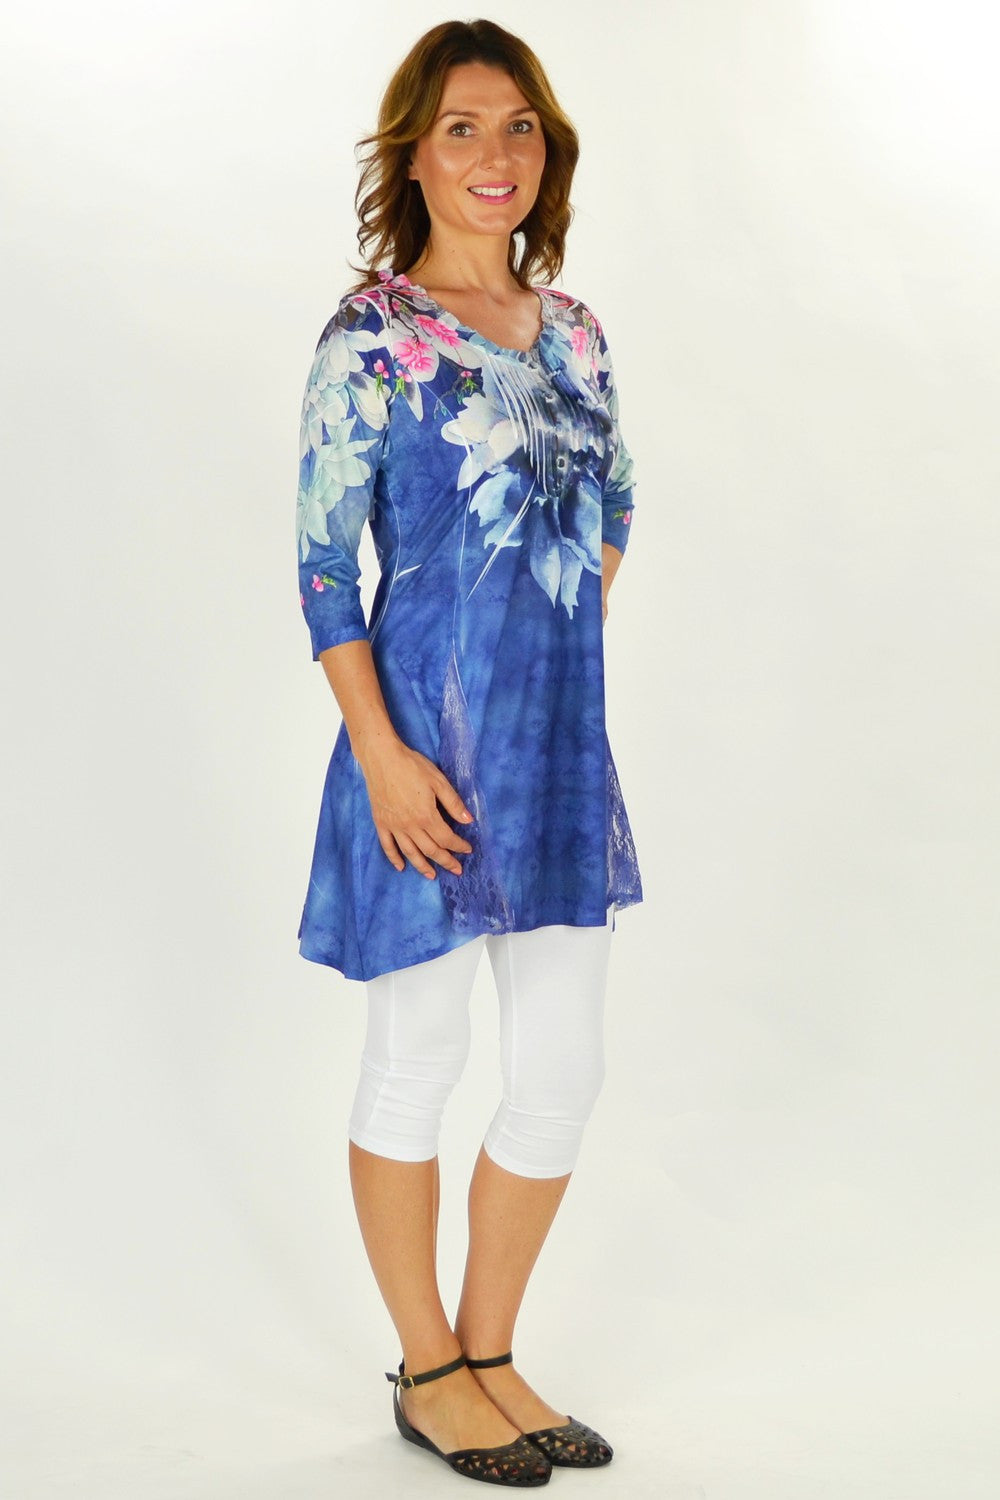 Cardinal Bird Tunic | I Love Tunics | Tunic Tops | Tunic | Tunic Dresses  | womens clothing online